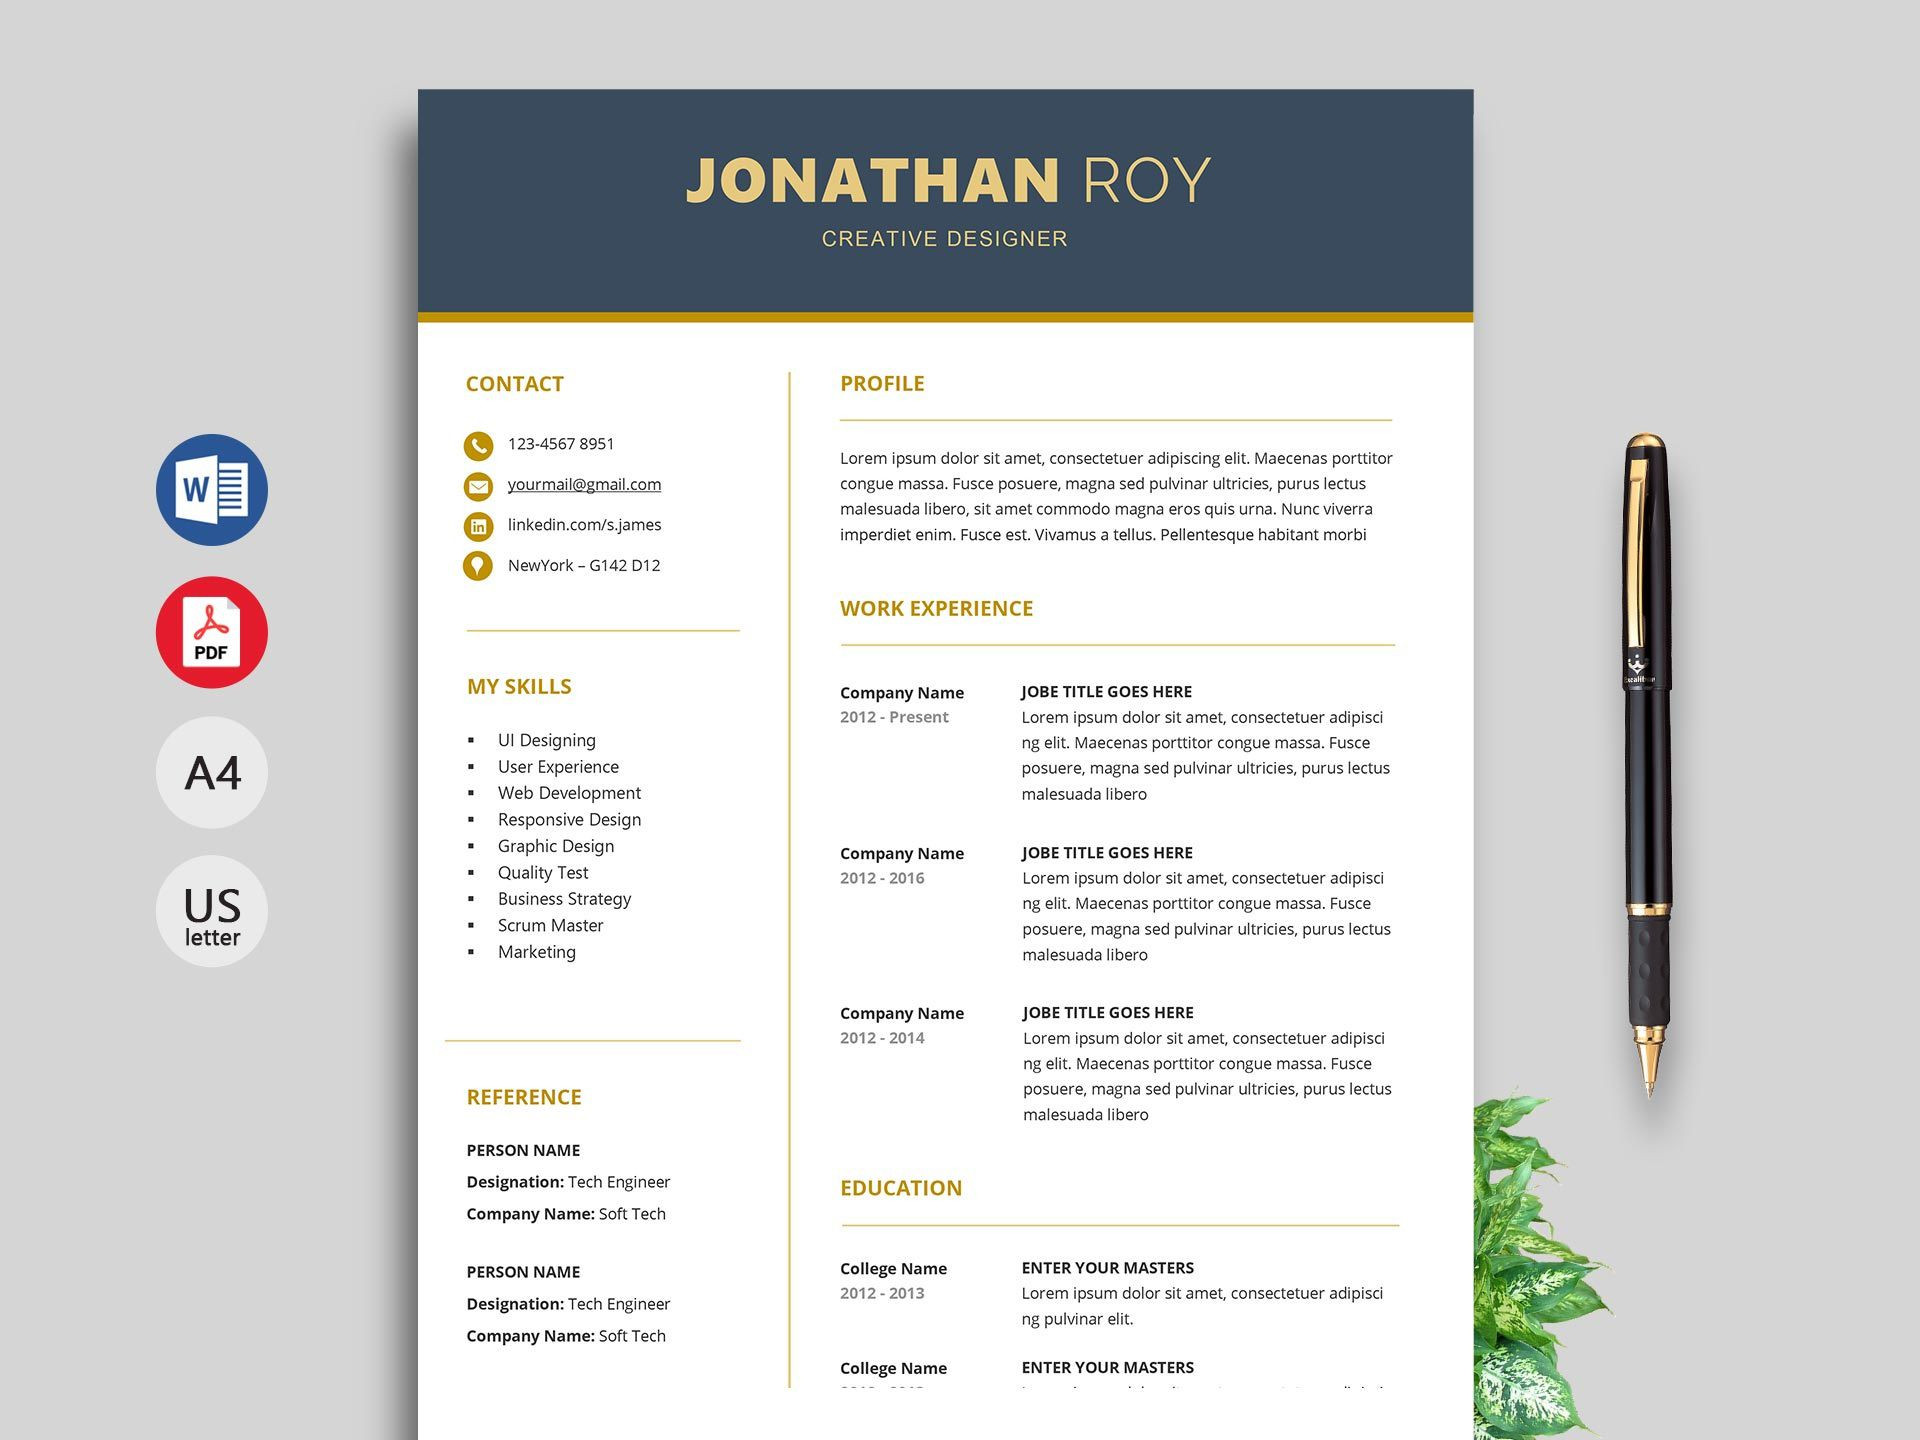 007 Rare Resume Template Free Word Download Highest Clarity  Cv With Photo Malaysia AustraliaFull